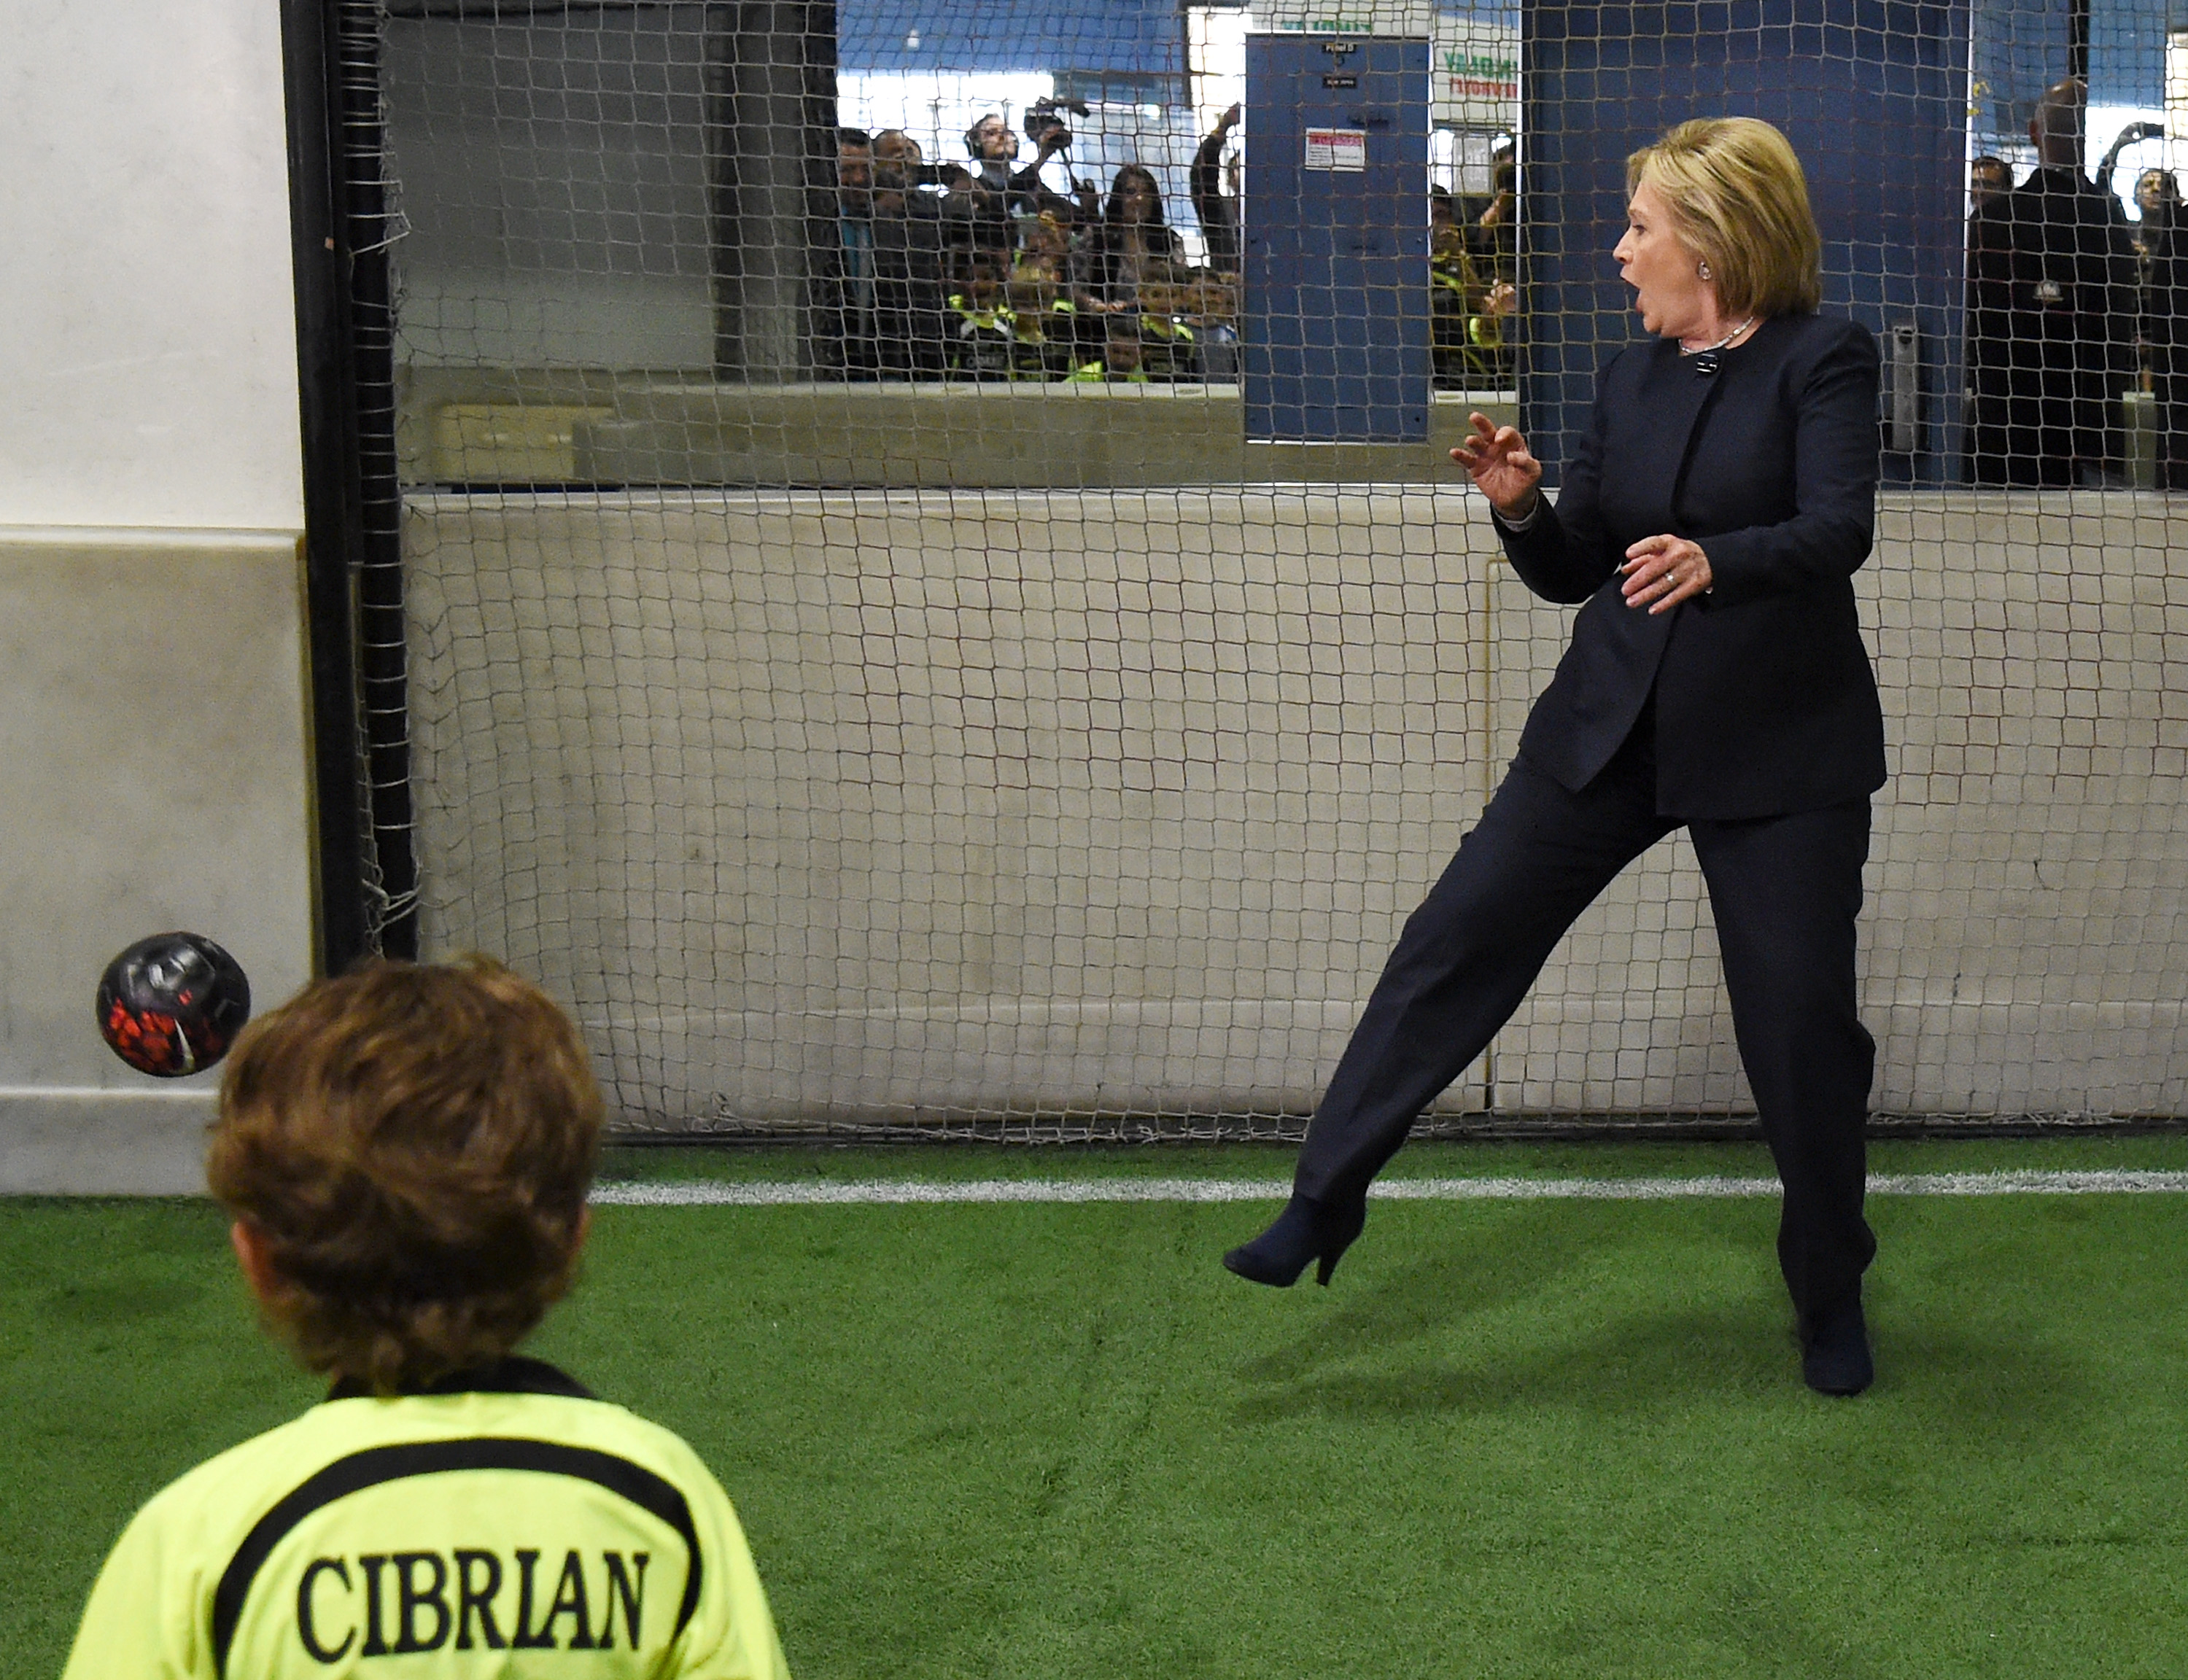 What Hobbies Could Hillary Take Up That Would Please David Brooks?